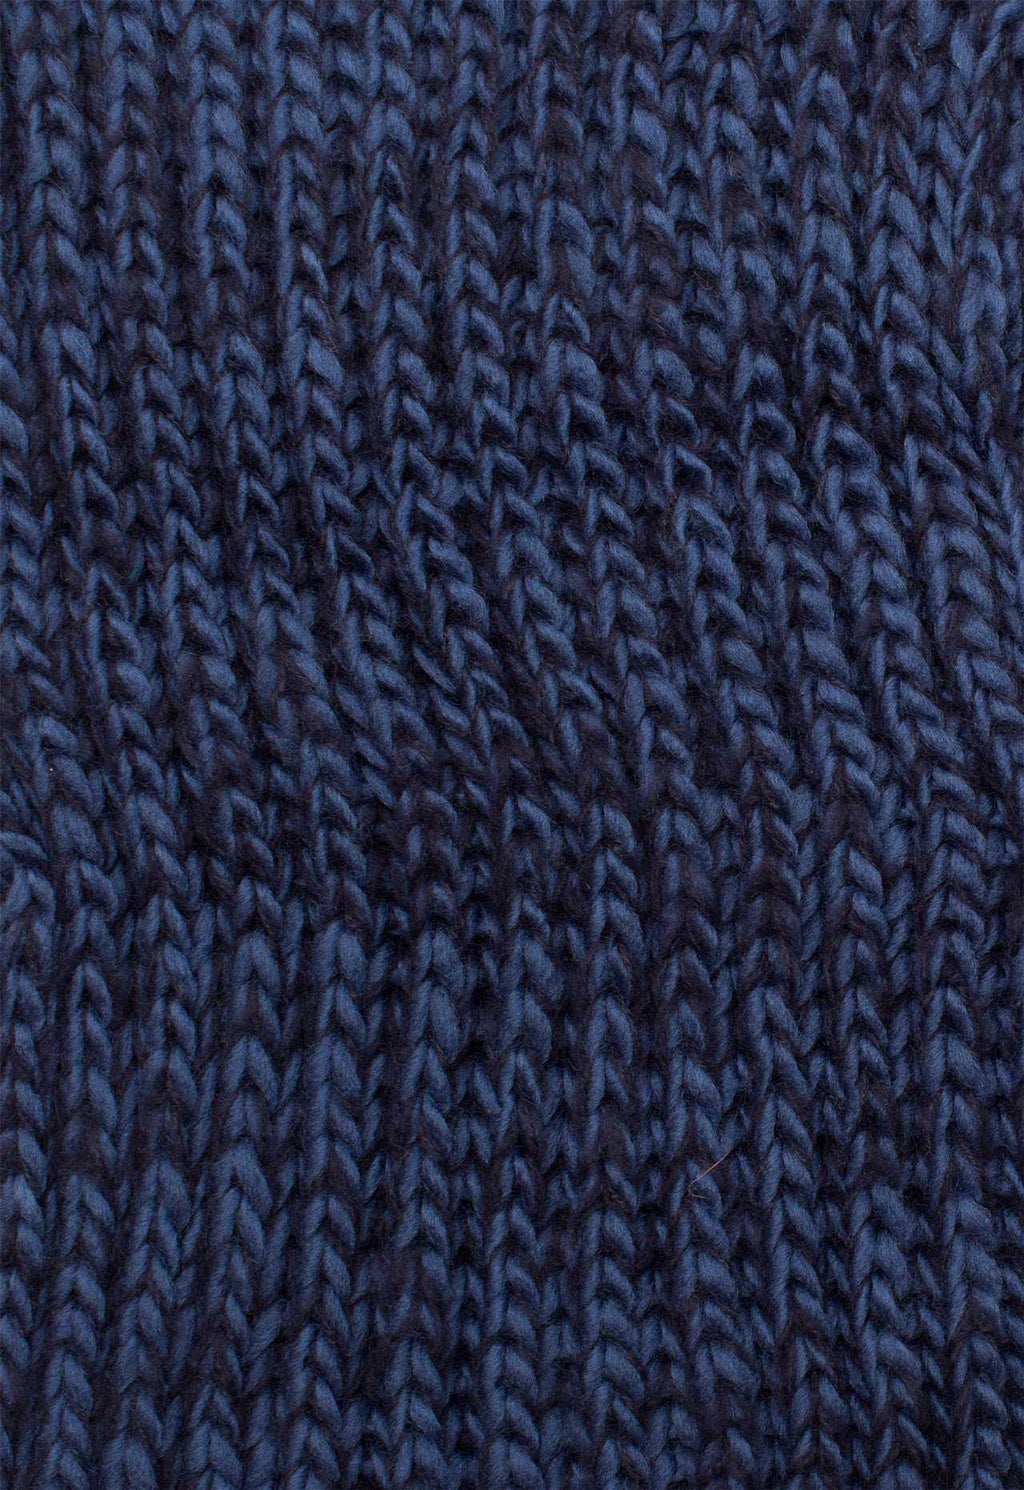 Accessories - Cambrey Knit Infinity Scarf - Navy